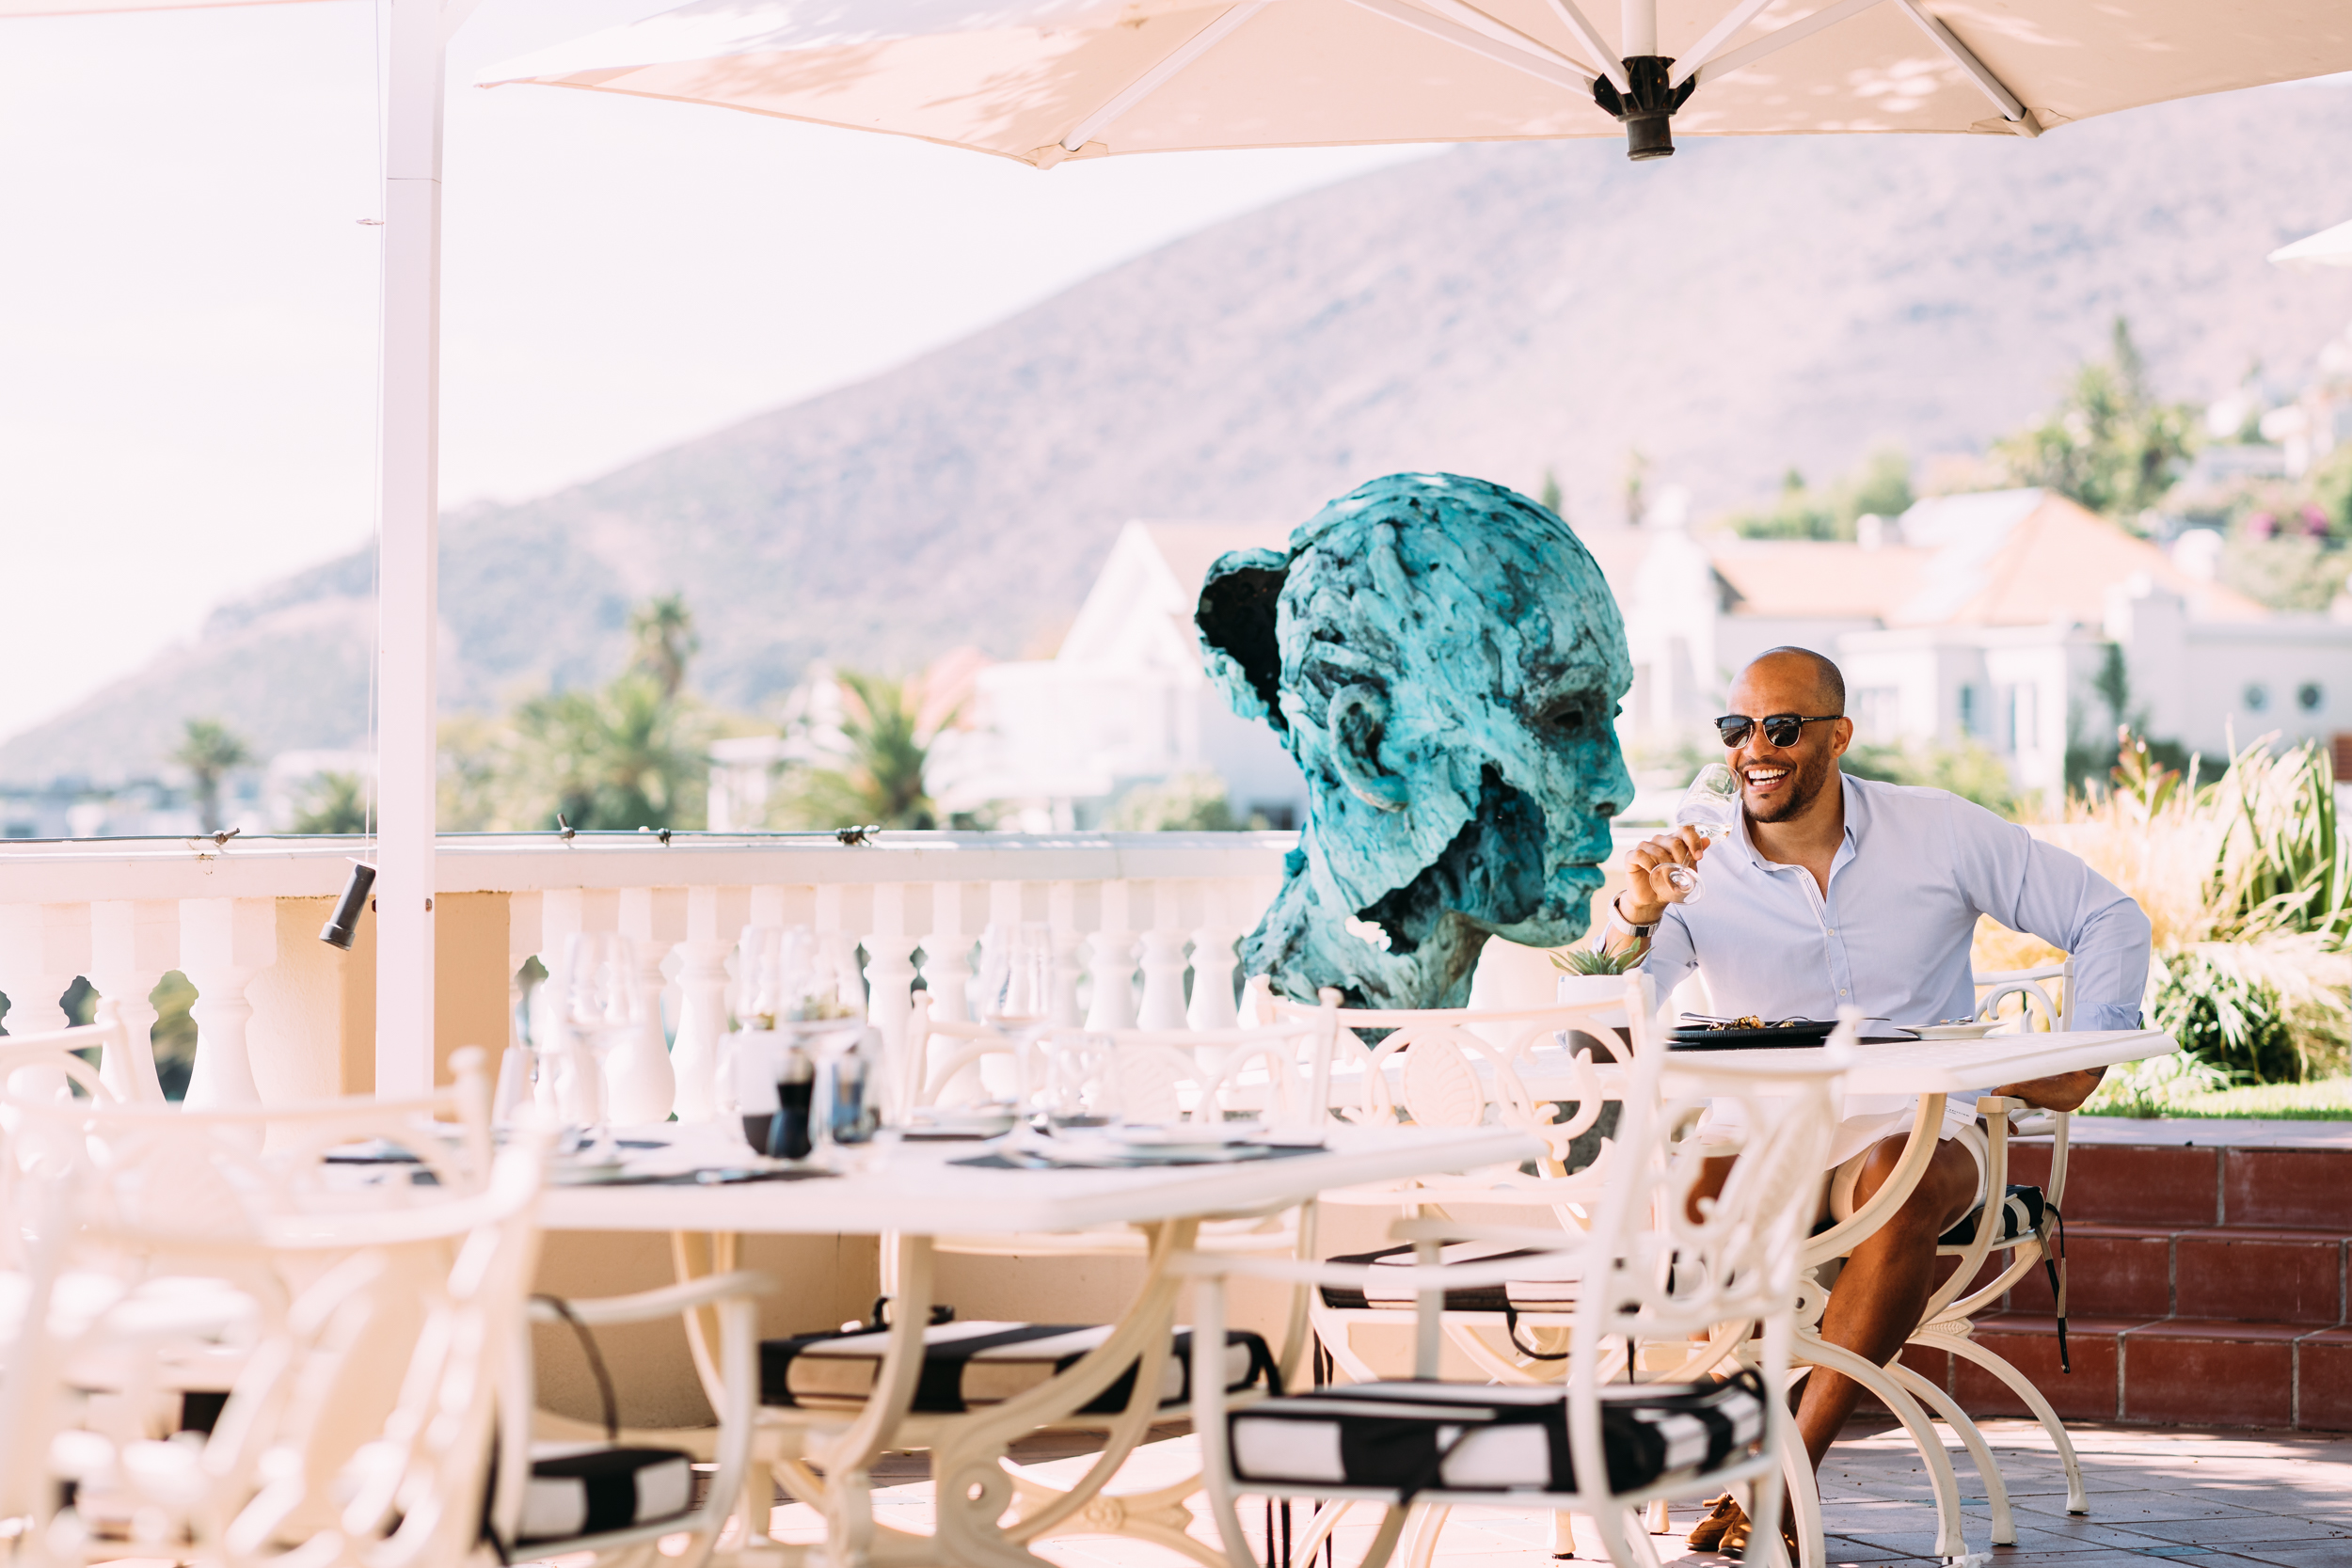 Harry Jameson enjoying lunch at Ellerman House with Lionel Smit sculpture in the background.